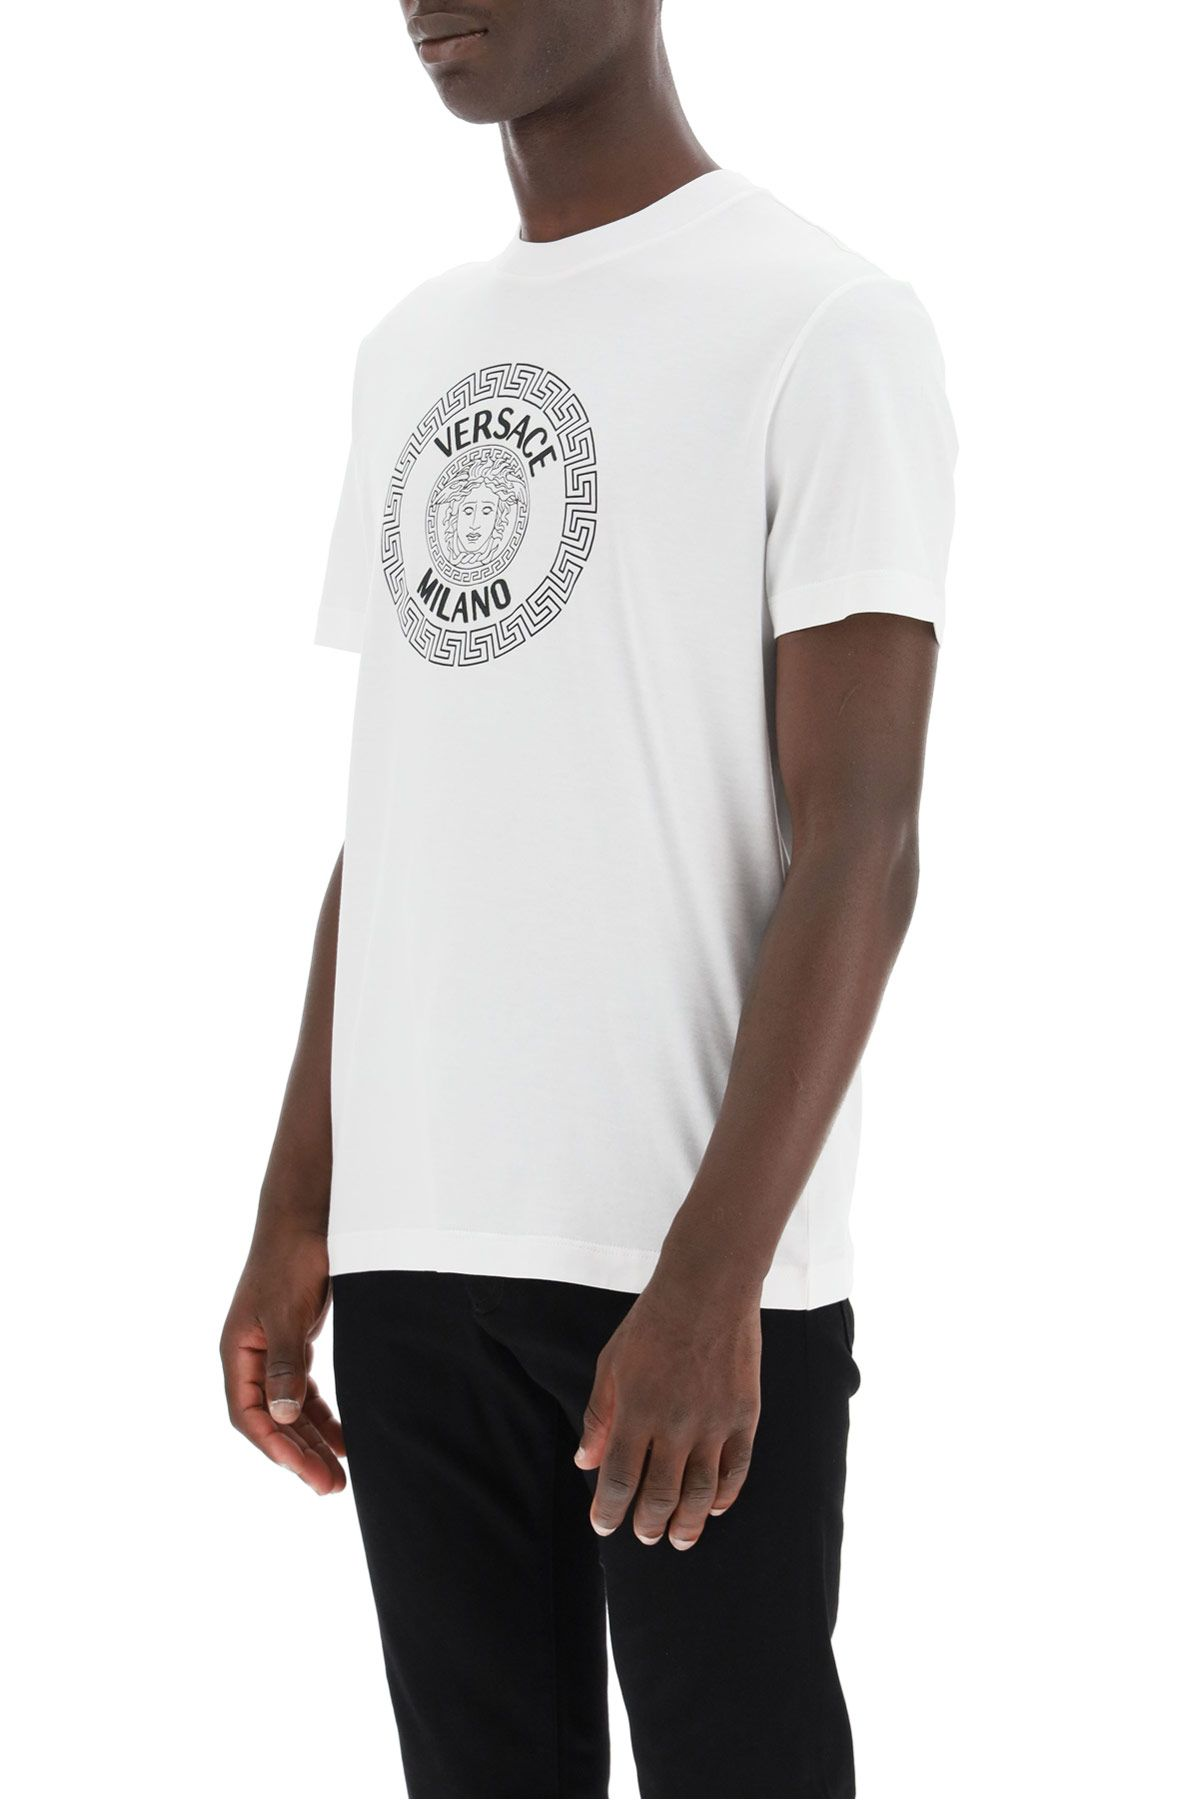 versace clothing men t-shirt with medusa print and logo embroidery